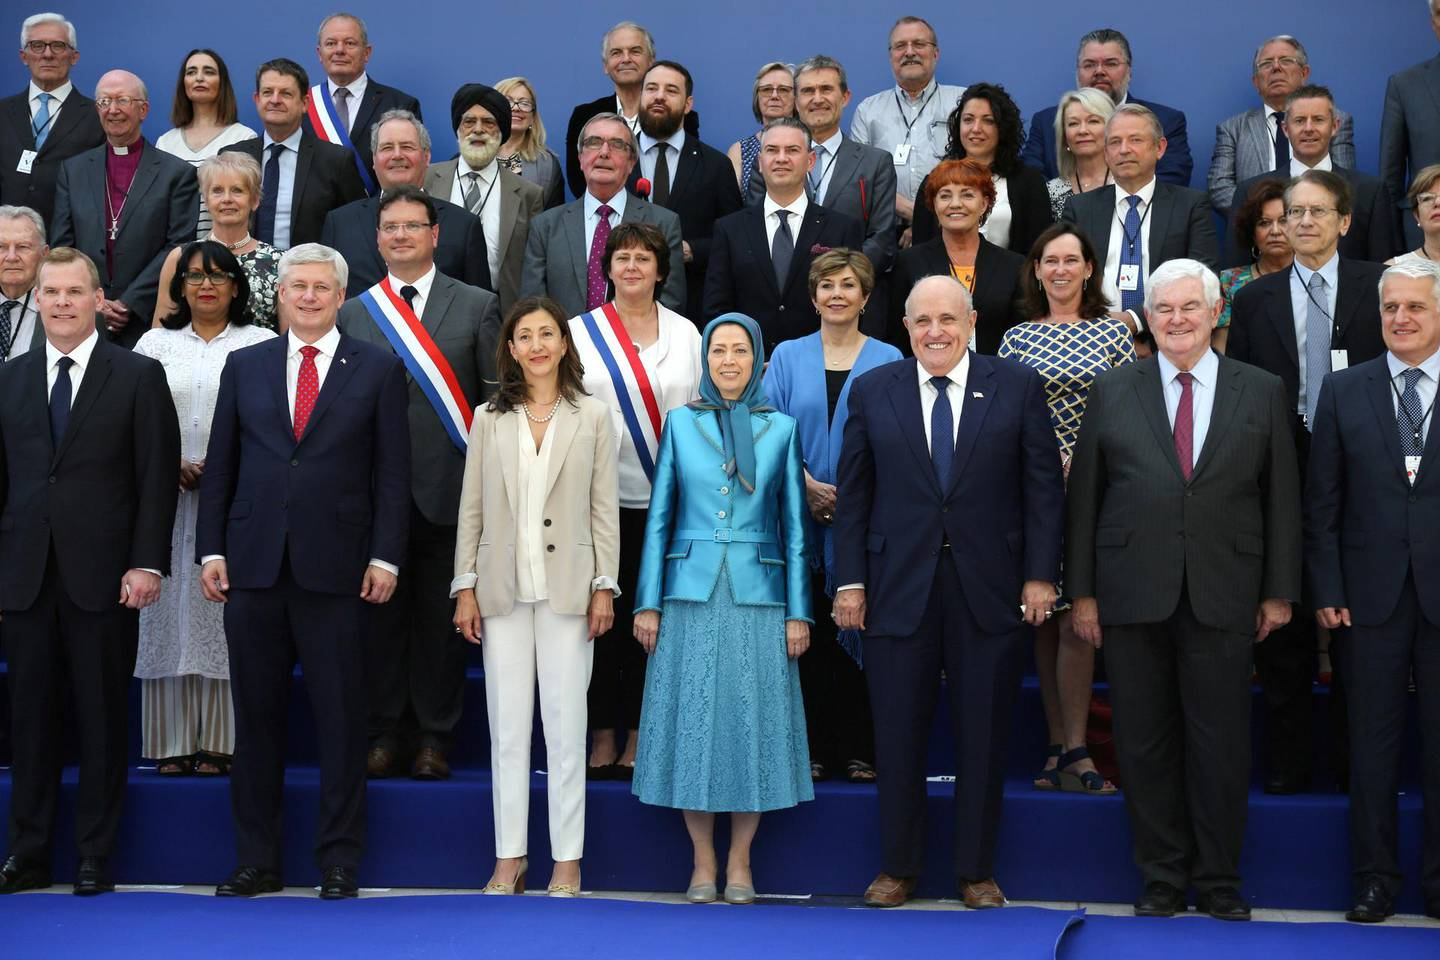 """(L-R, front row) Canadian foreign minister John Baird, Canadian retired politician Stephen Joseph, Colombian-French politician and former senator Ingrid Betancourt, leader of the People's Mujahedin of Iran Maryam Rajavi, former US mayor of New York City and attorney to President Donald Trump Rudolph Giuliani, former US Speaker of the House Newt Gingrich,  US author and Chairman of the Center for Equal Opportunity Linda Chavez (2nd row, 3rd R),  Italy's former Foreign Affairs Minister Giulio Terzi di Sant'Agata (2nd row, R) pose for a picture during the meeting """"Free Iran 2018 - the Alternative"""", organised by the People's Mujahedin of Iran in Villepinte, near Paris on June 30, 2018. (Photo by Zakaria ABDELKAFI / AFP)"""